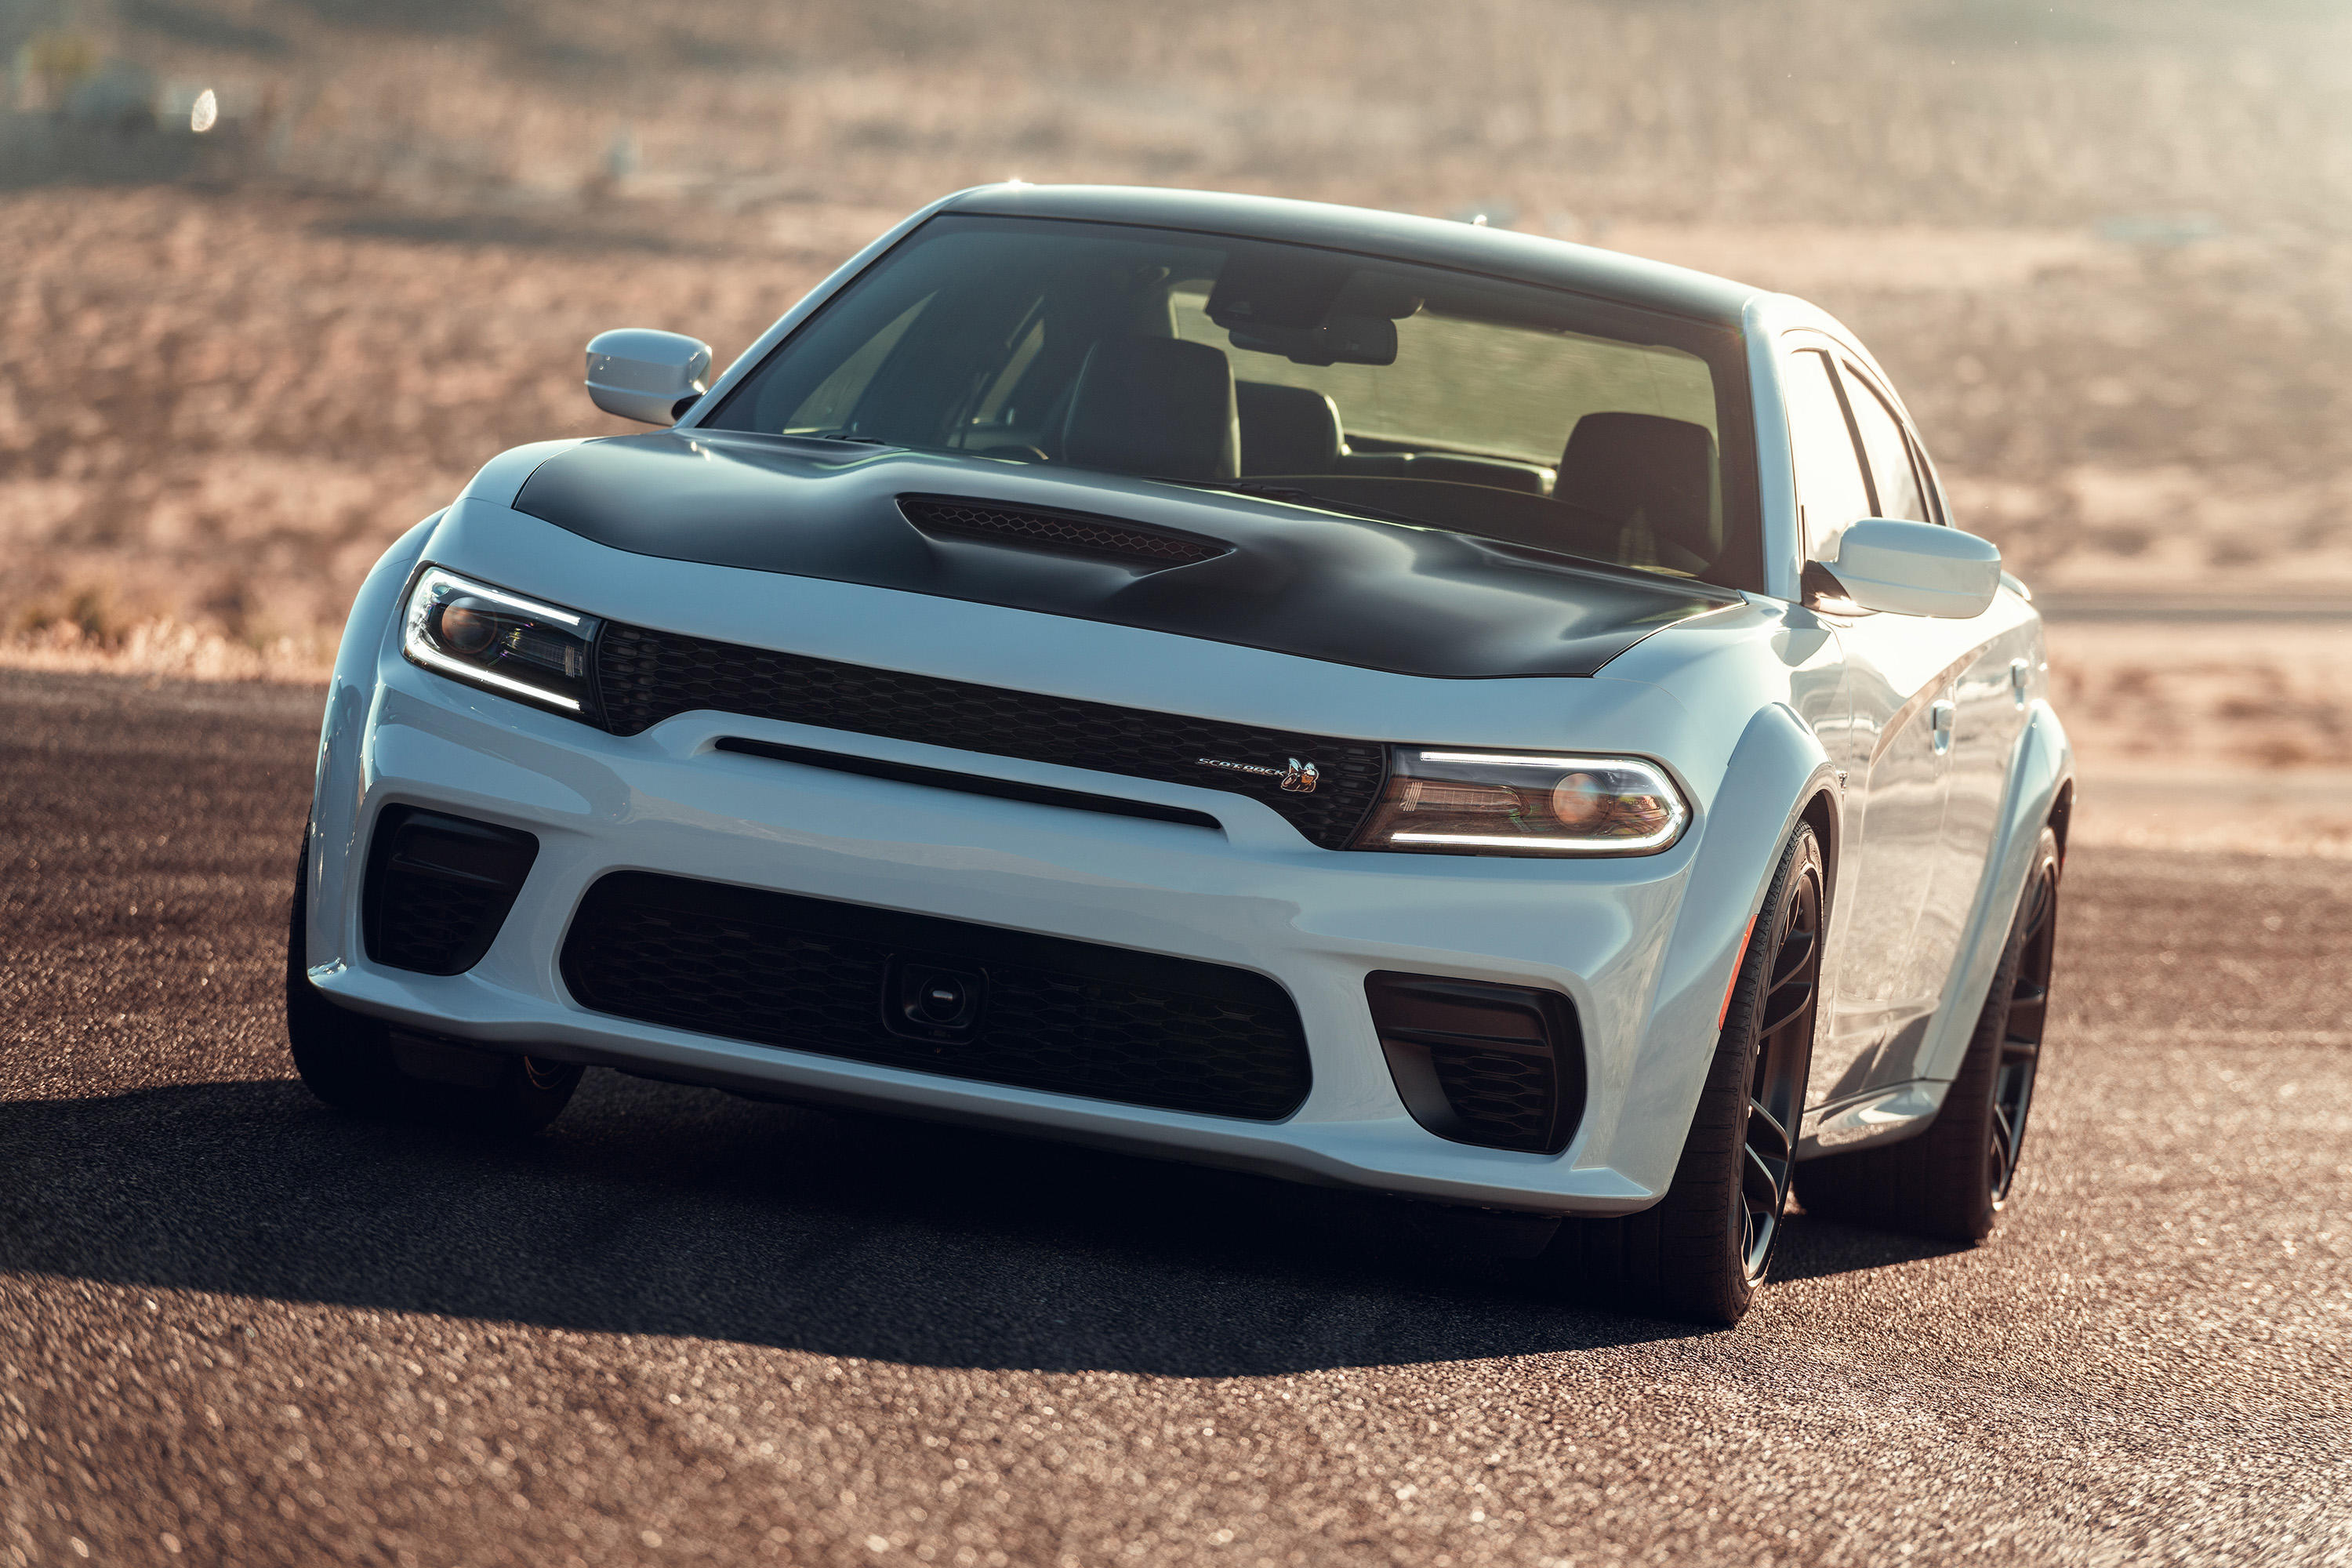 2020-dodge-charger-scat-pack-widebody-51